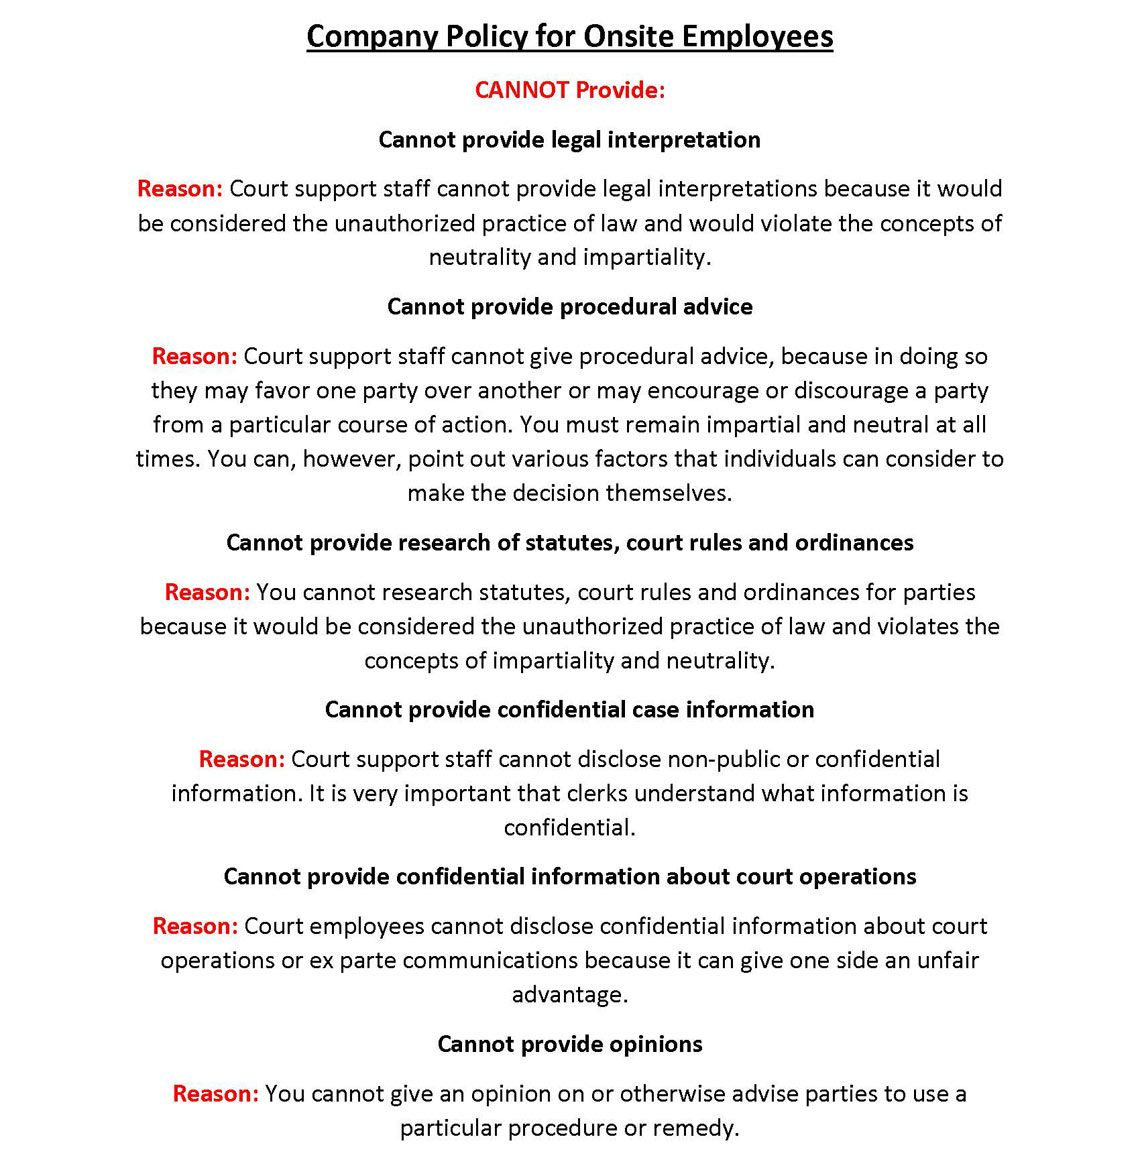 company policy for onsite employees part 1